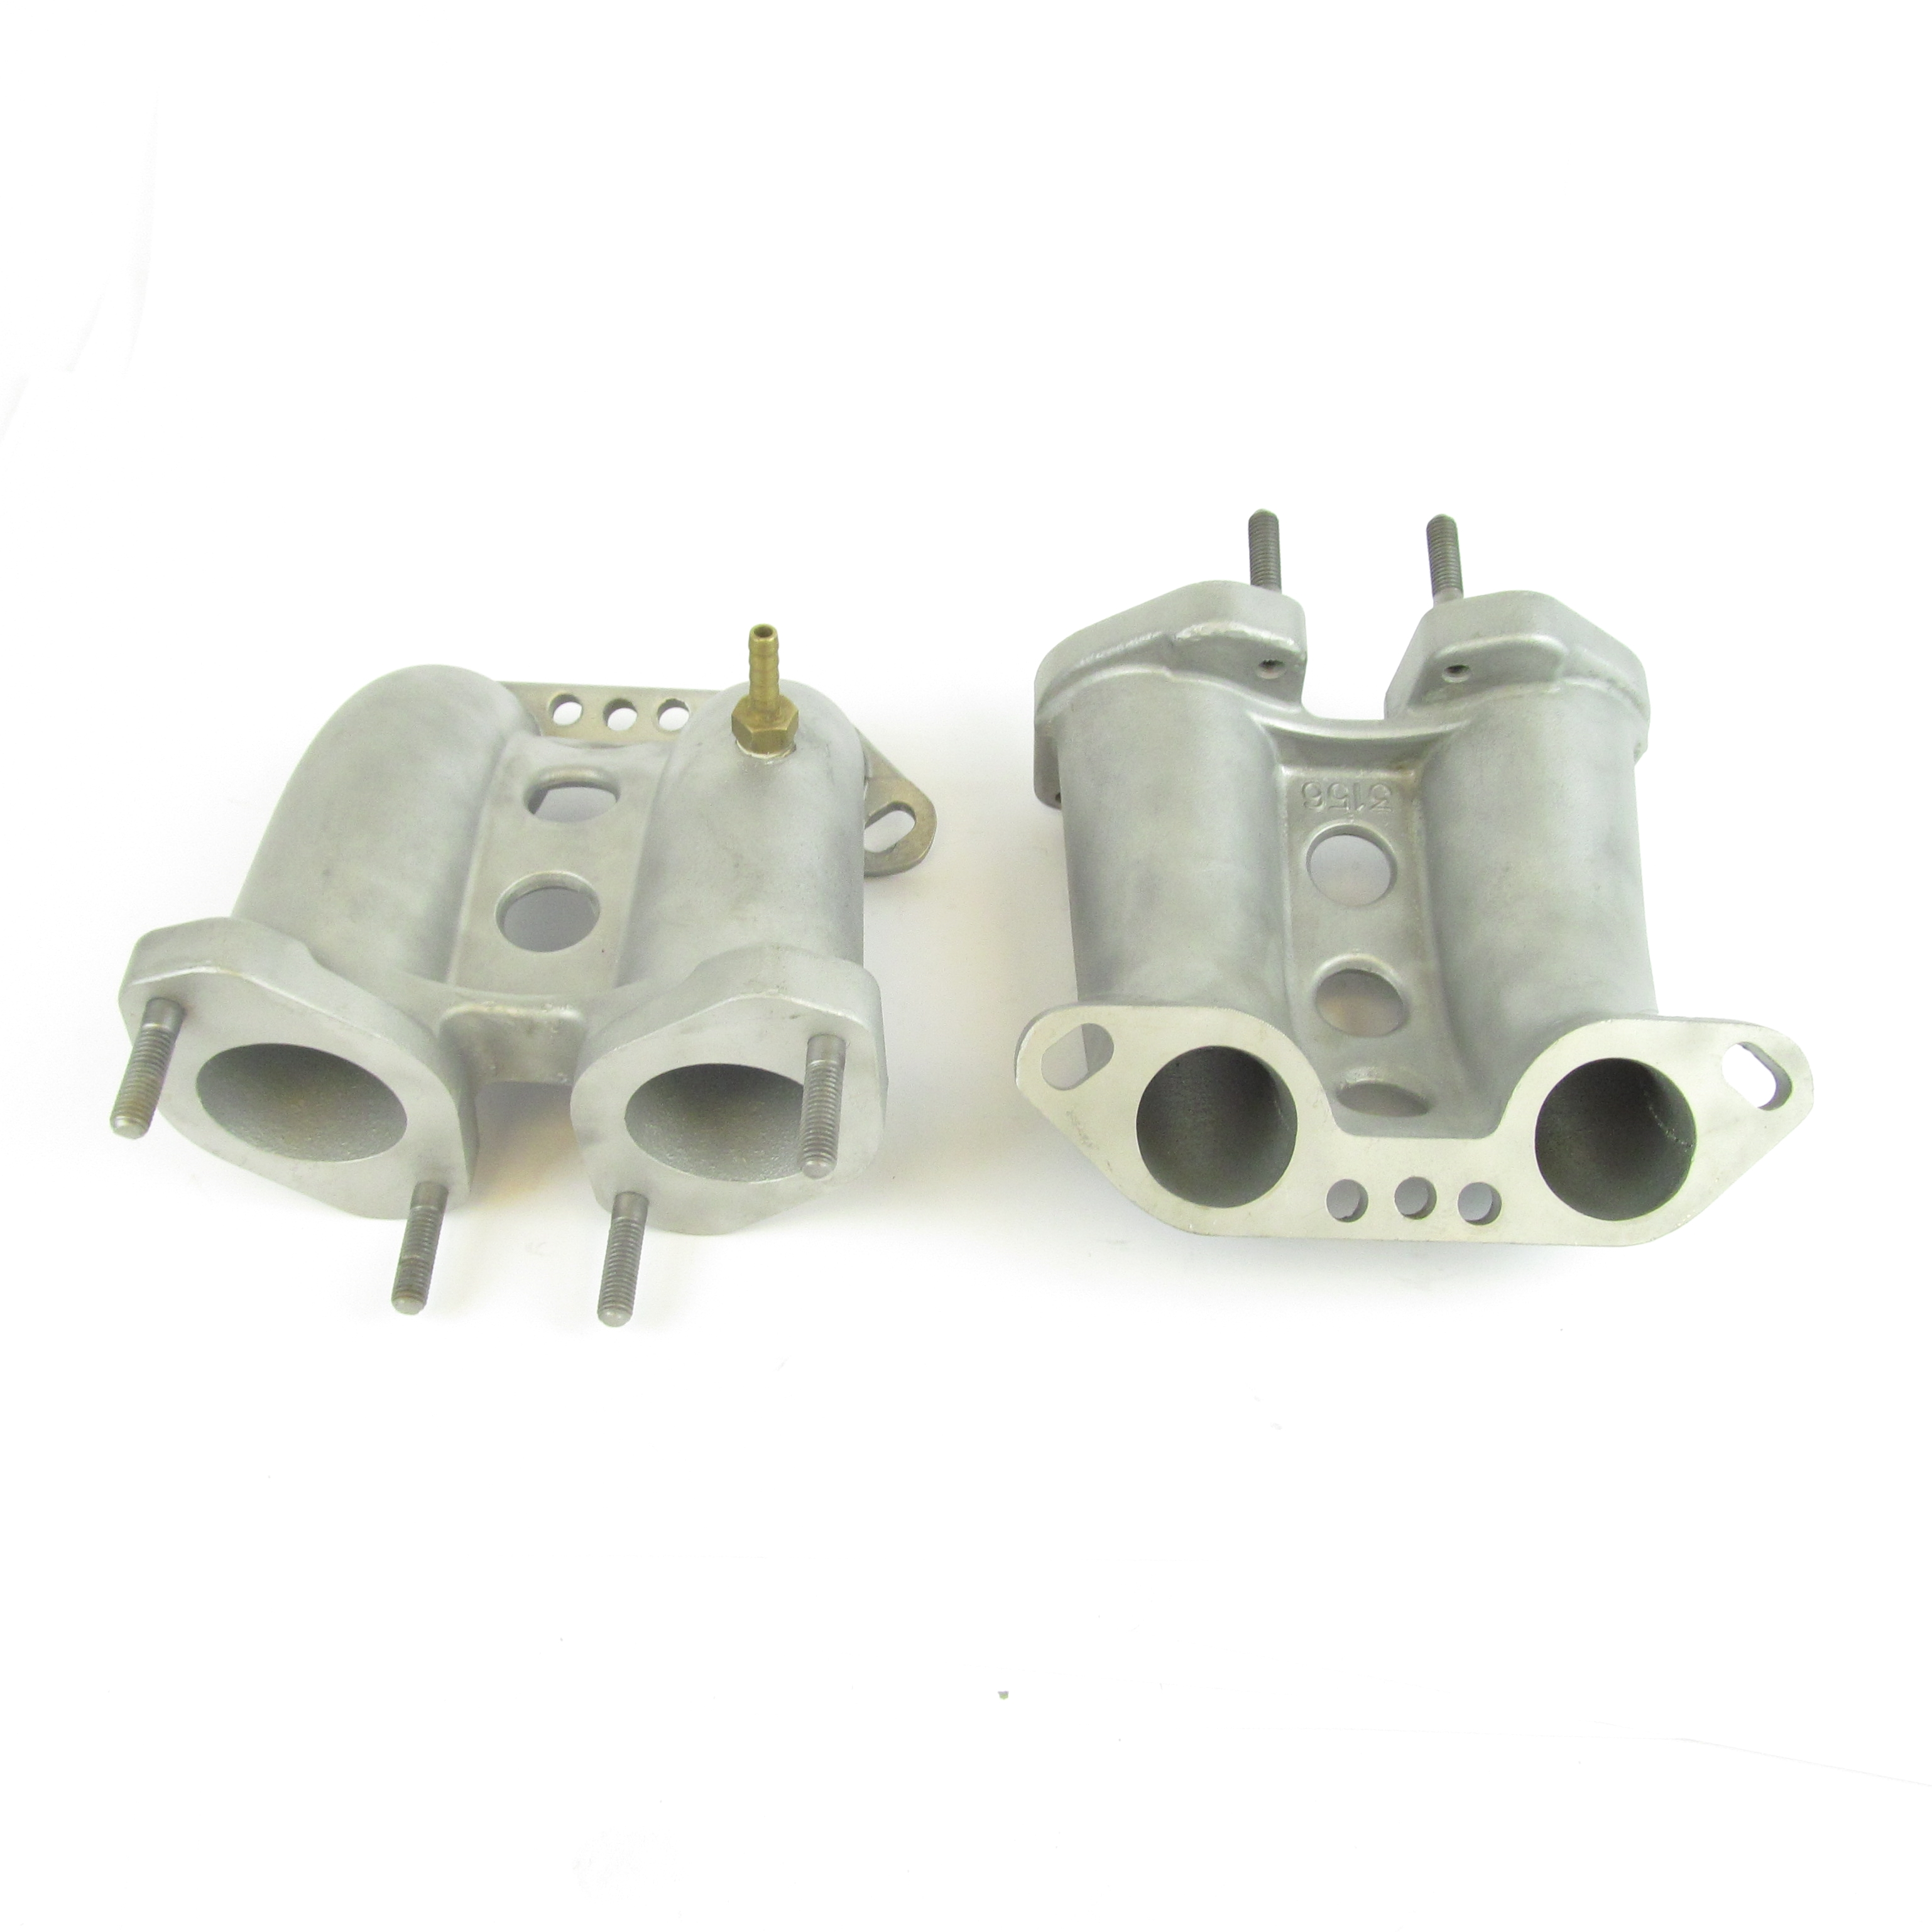 Reconditioned CB3156 VW Type4 Manifolds to suit Dellorto DRLA & Weber IDF